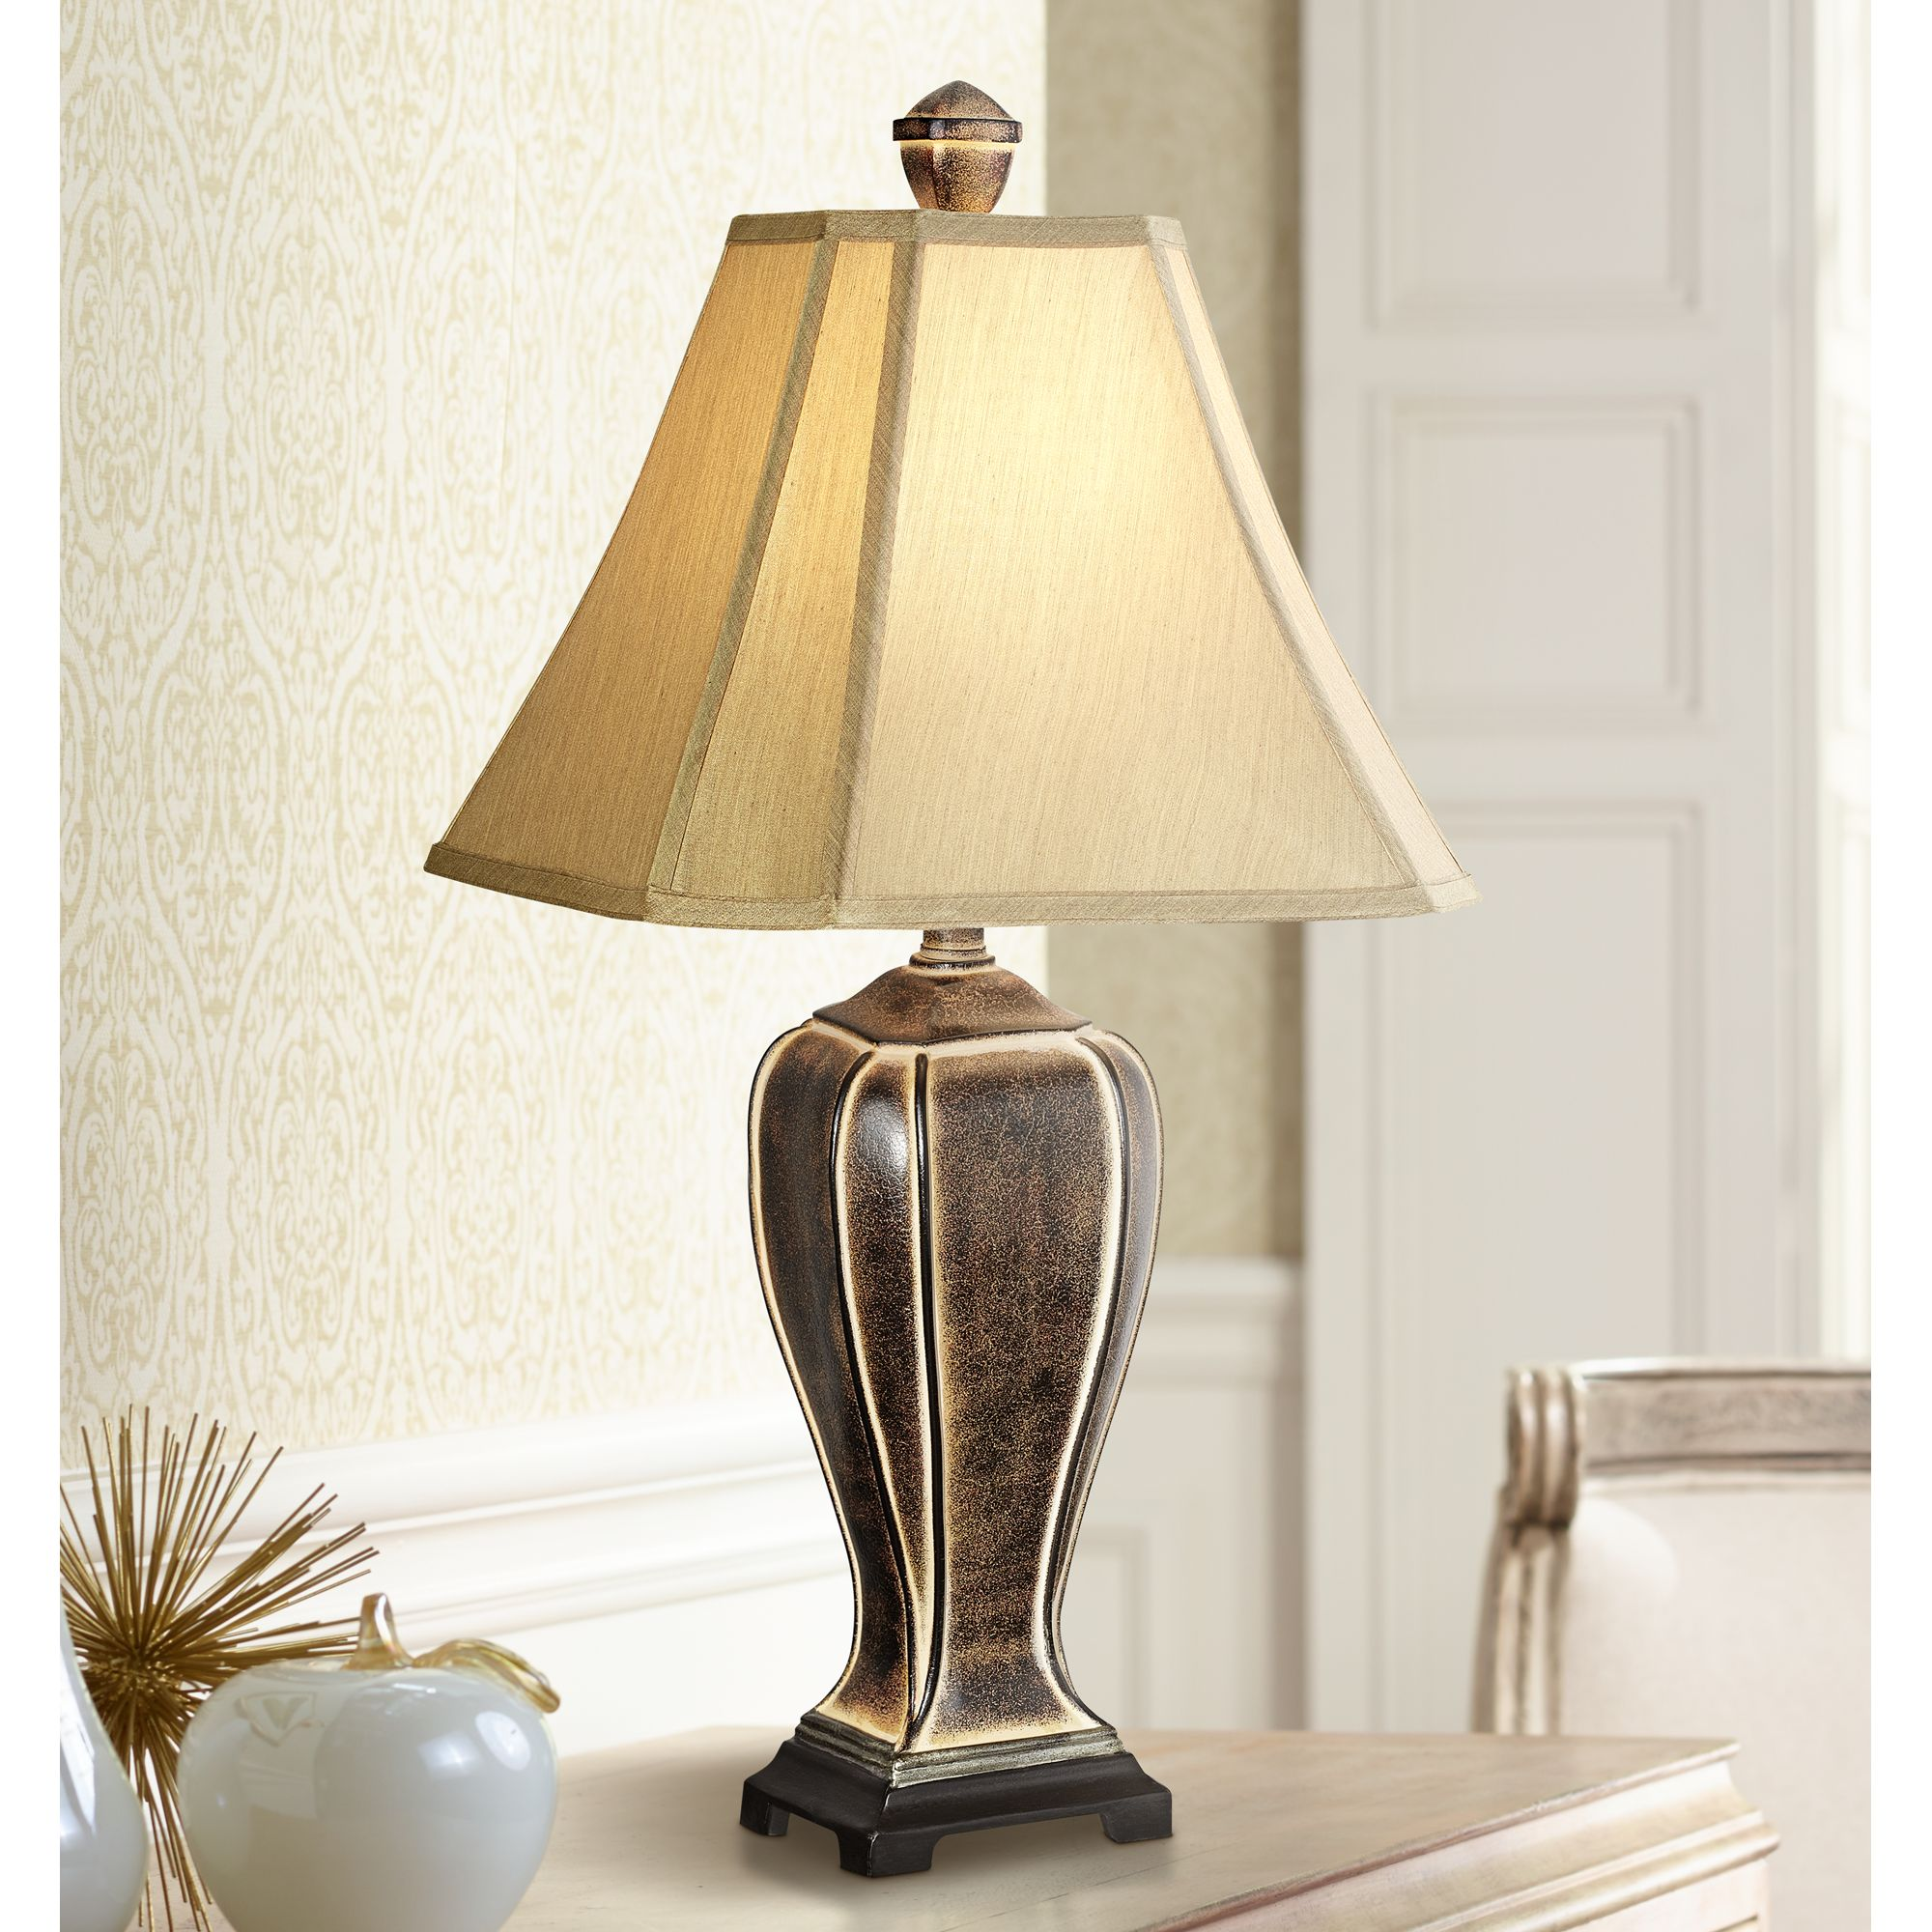 Regency Hill Traditional Table Lamp Desert Crackle Gold Jar Taupe Faux Silk Bell Shade for Living Room Family Bedroom Bedside